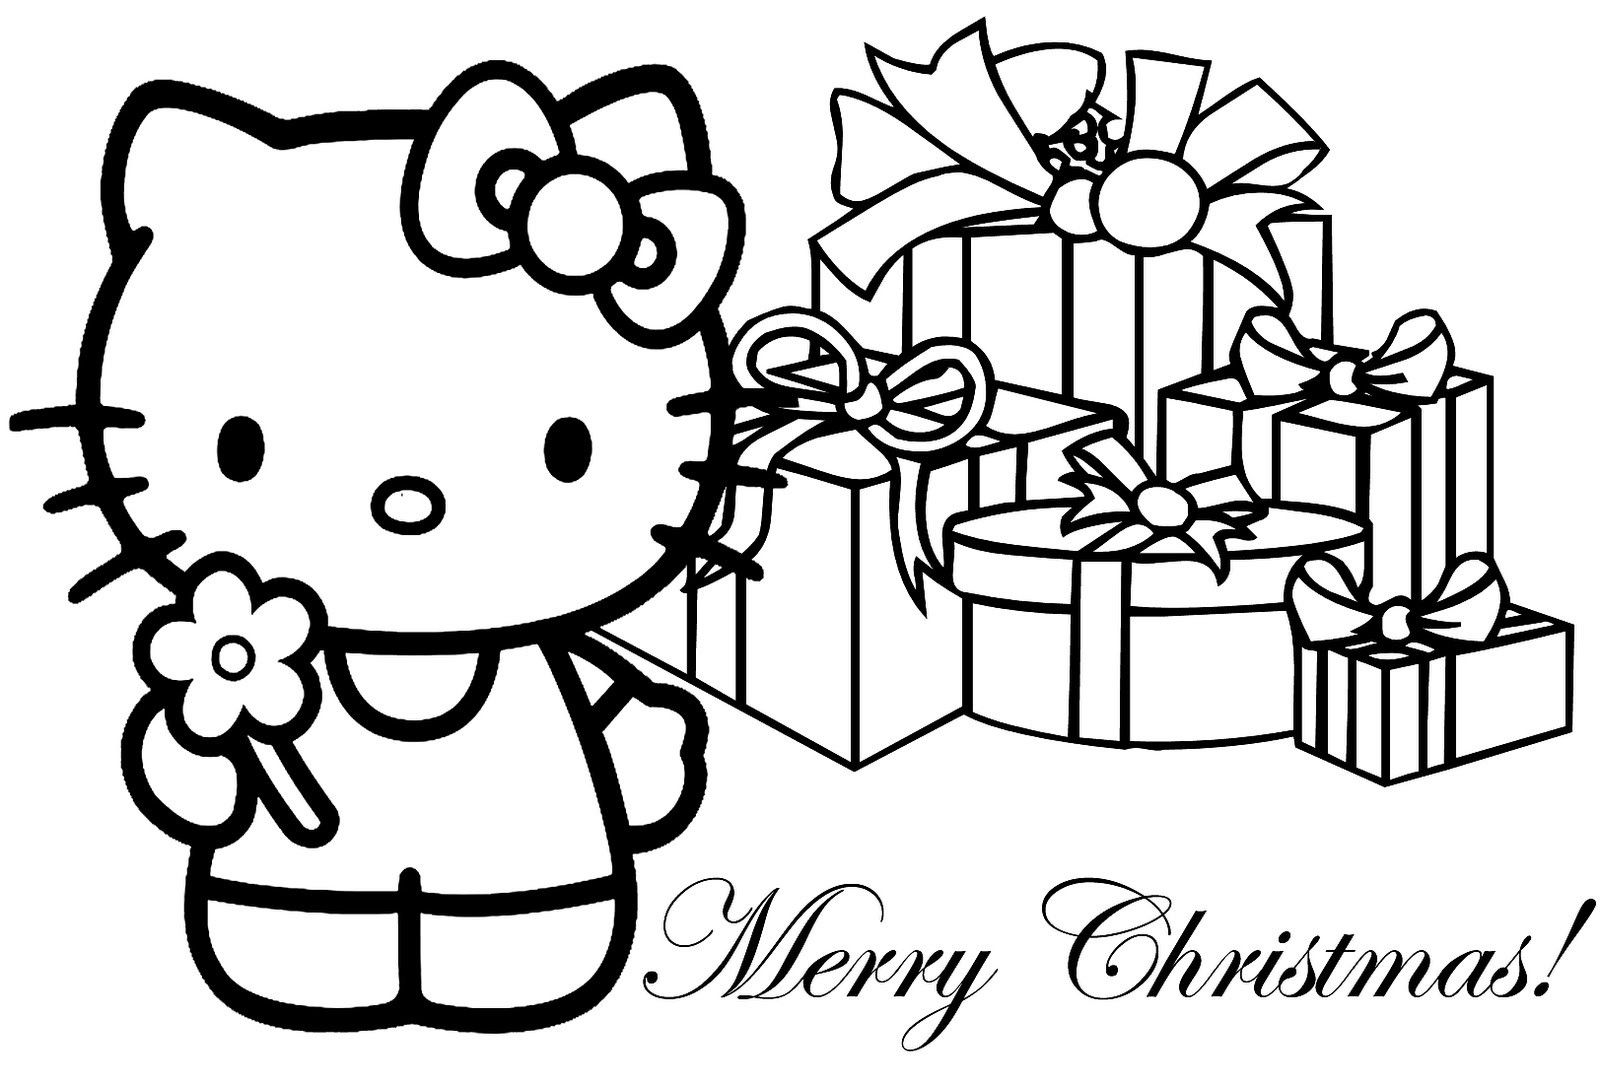 Hello Kitty Christmas Coloring Pages For Kids Hello Kitty Coloring Pages For Ki Hello Kitty Colouring Pages Hello Kitty Coloring Merry Christmas Coloring Pages